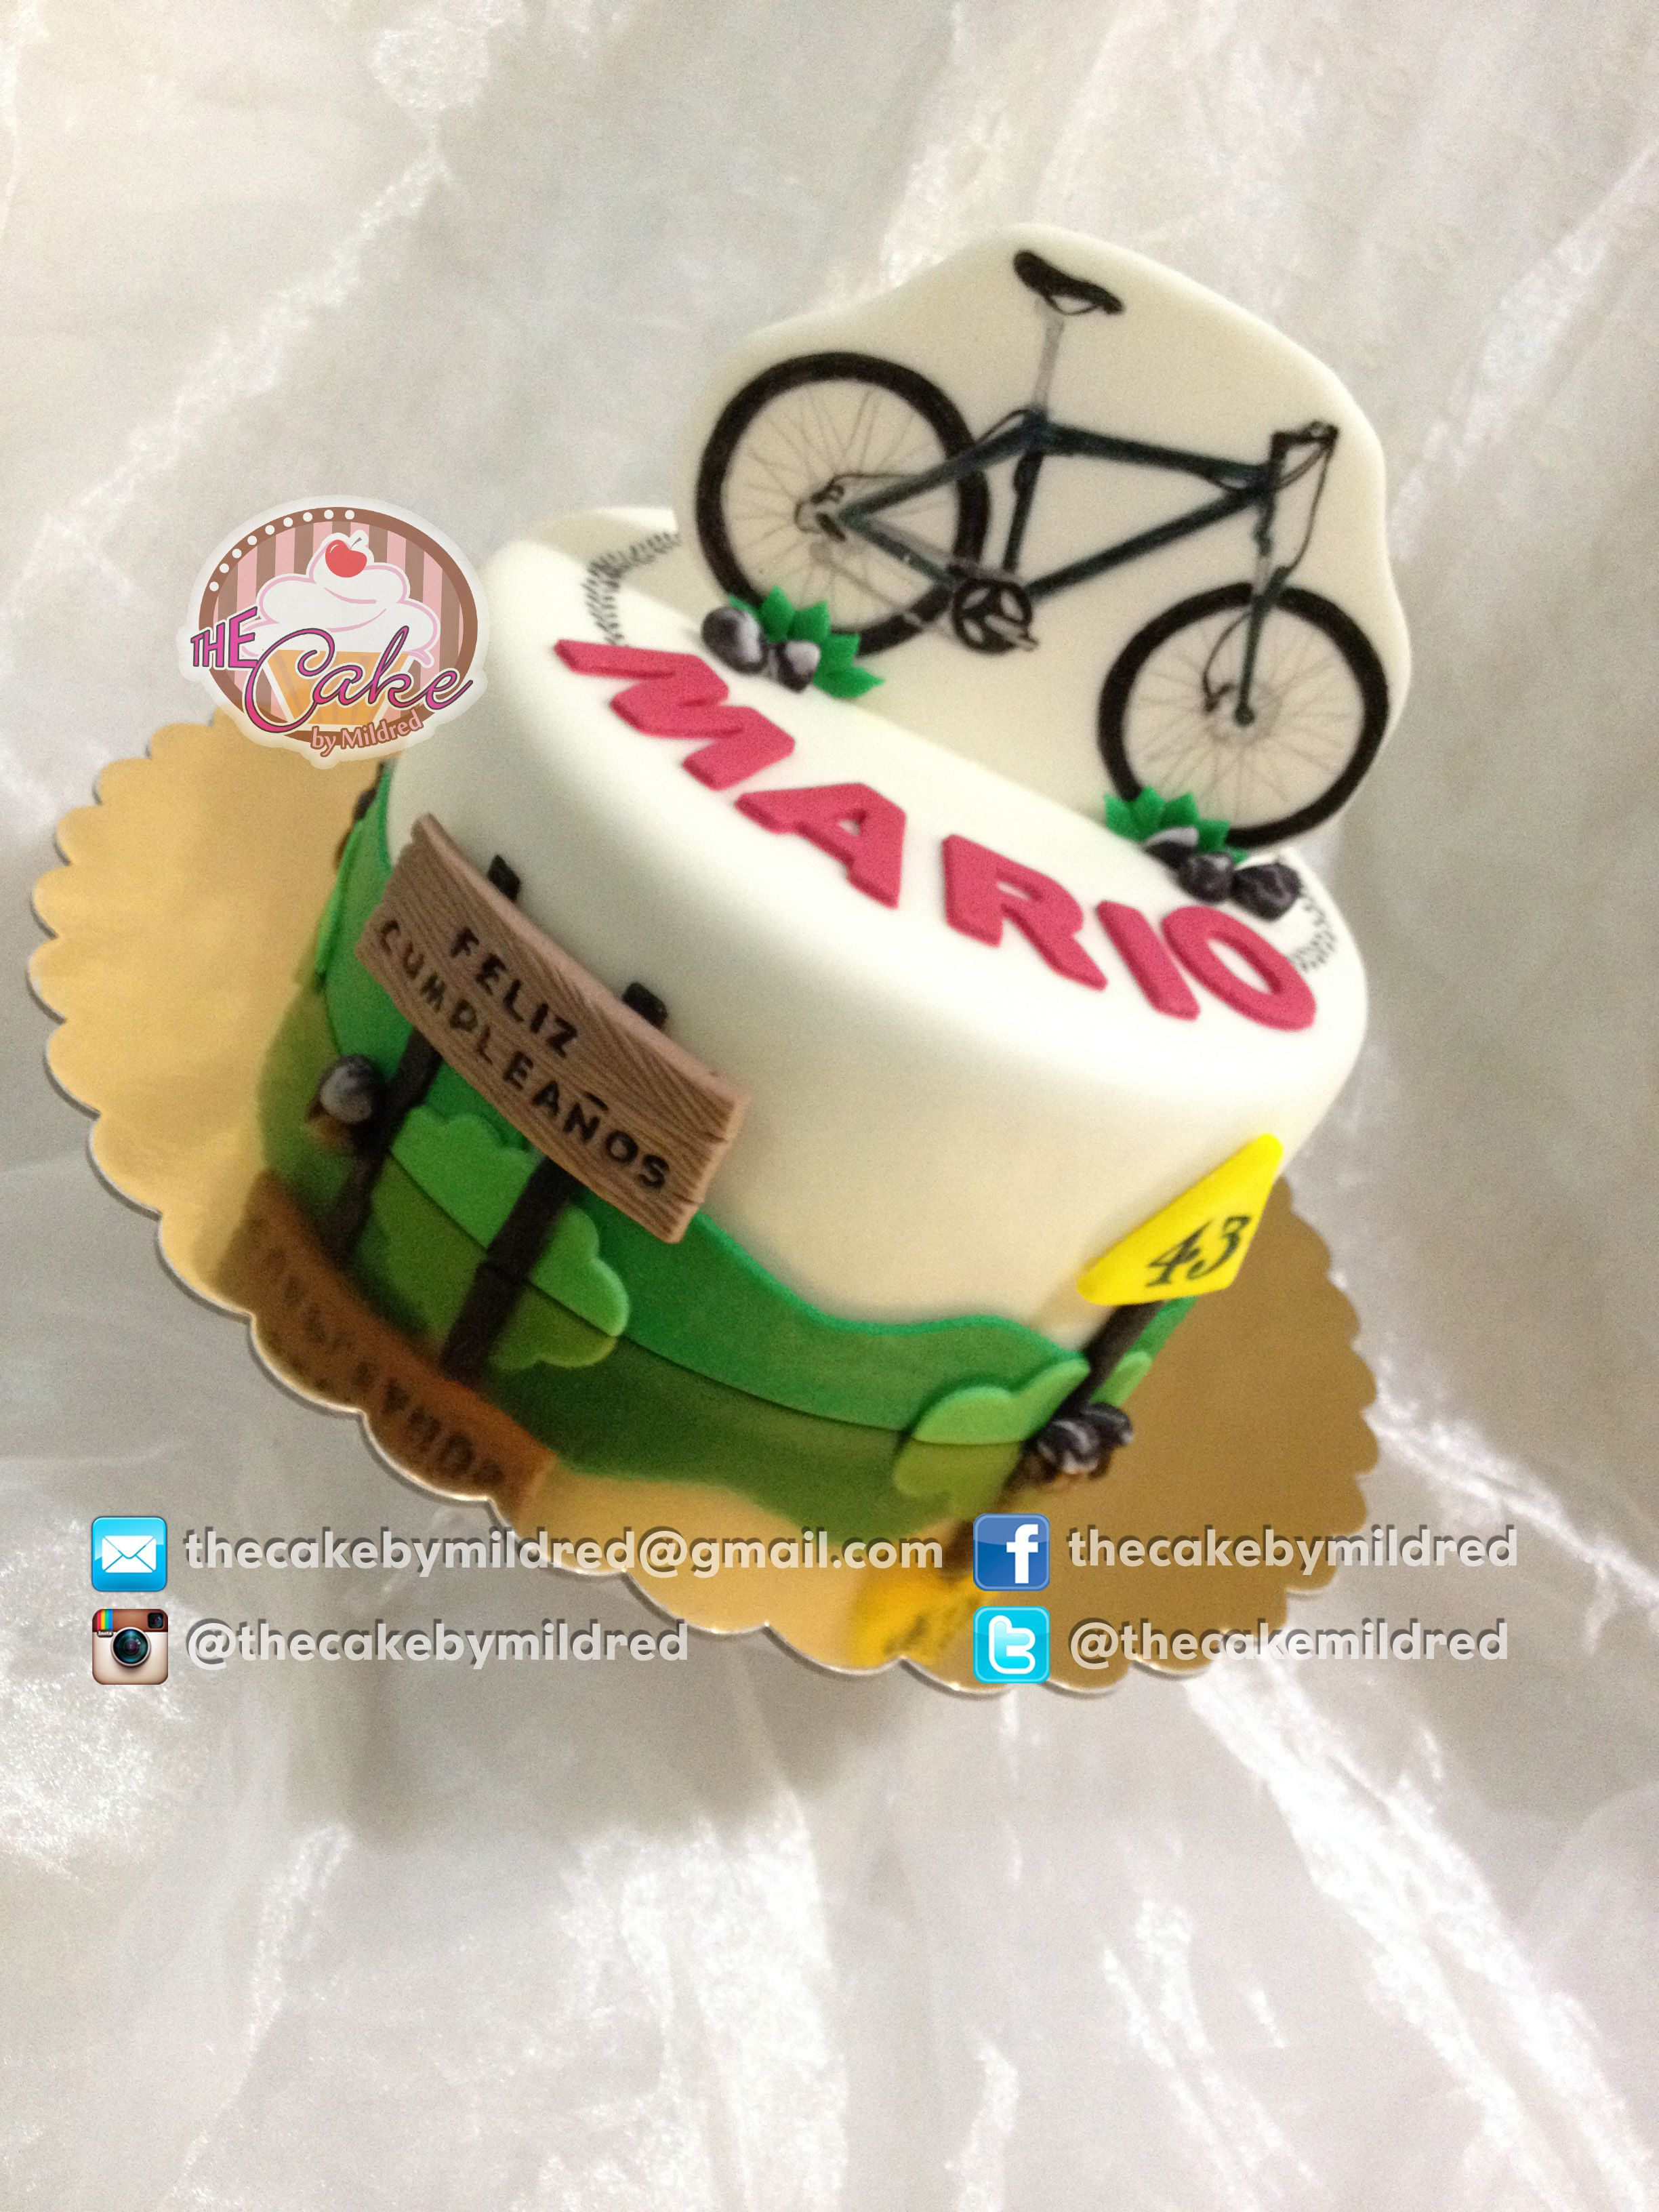 Another Mountain Bike Cake